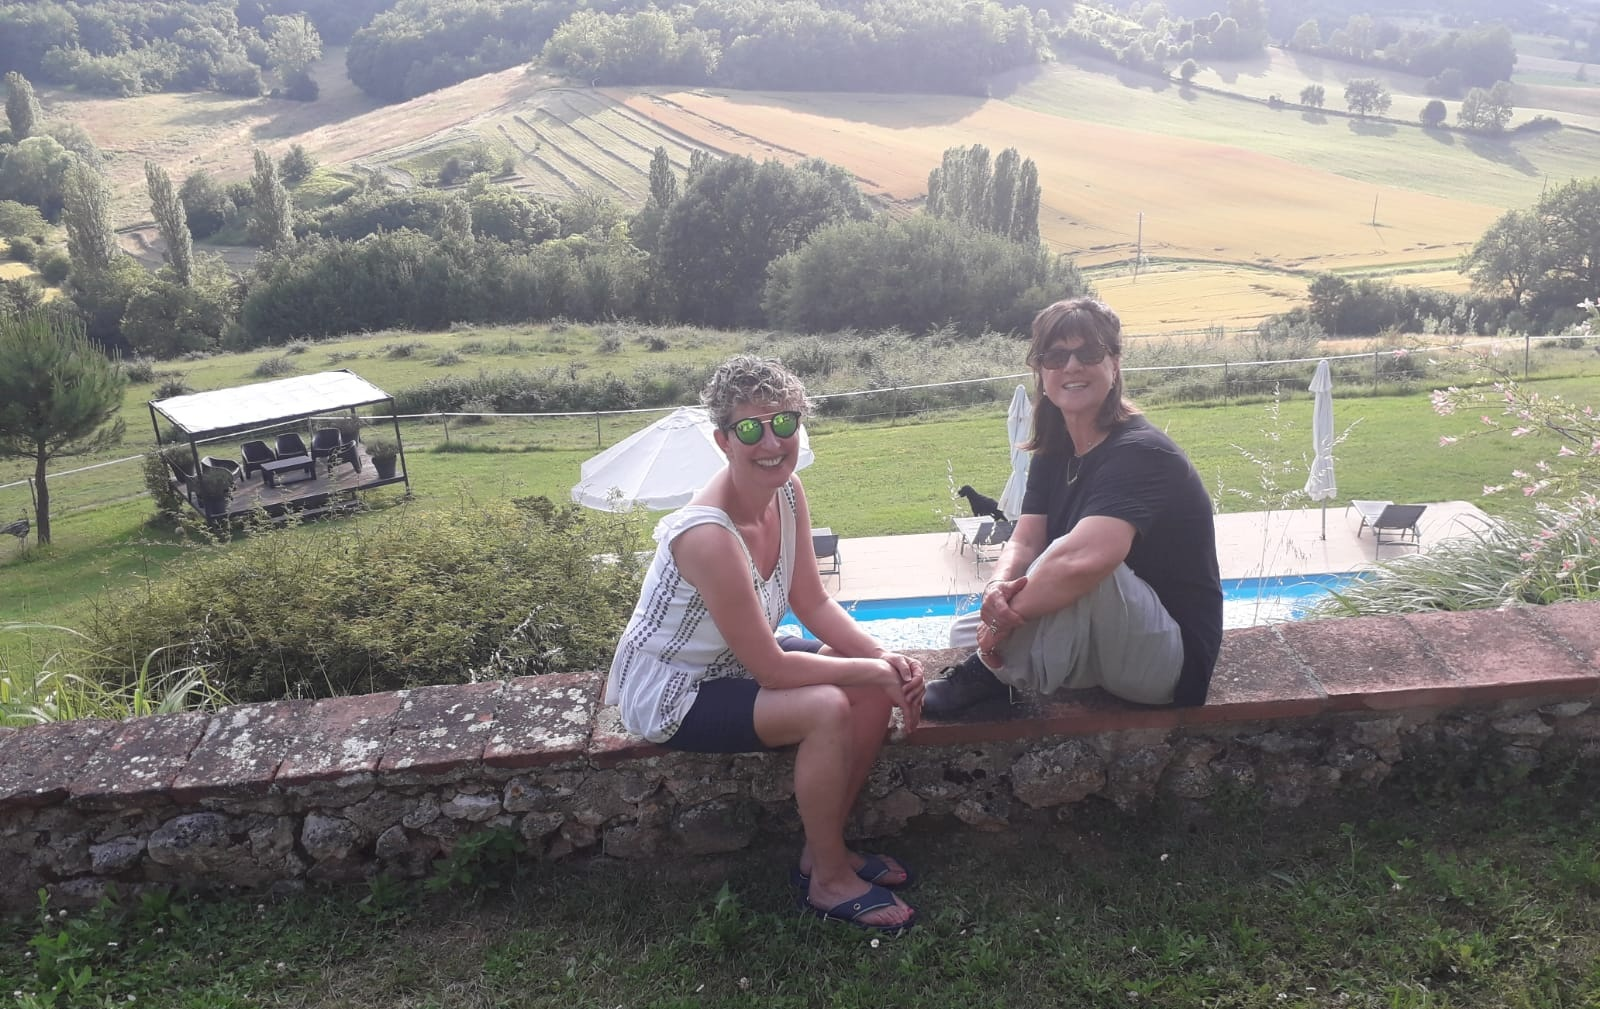 Yvonne and I chatting with the beautiful setting of her Health Retreat in SW France as a backdrop